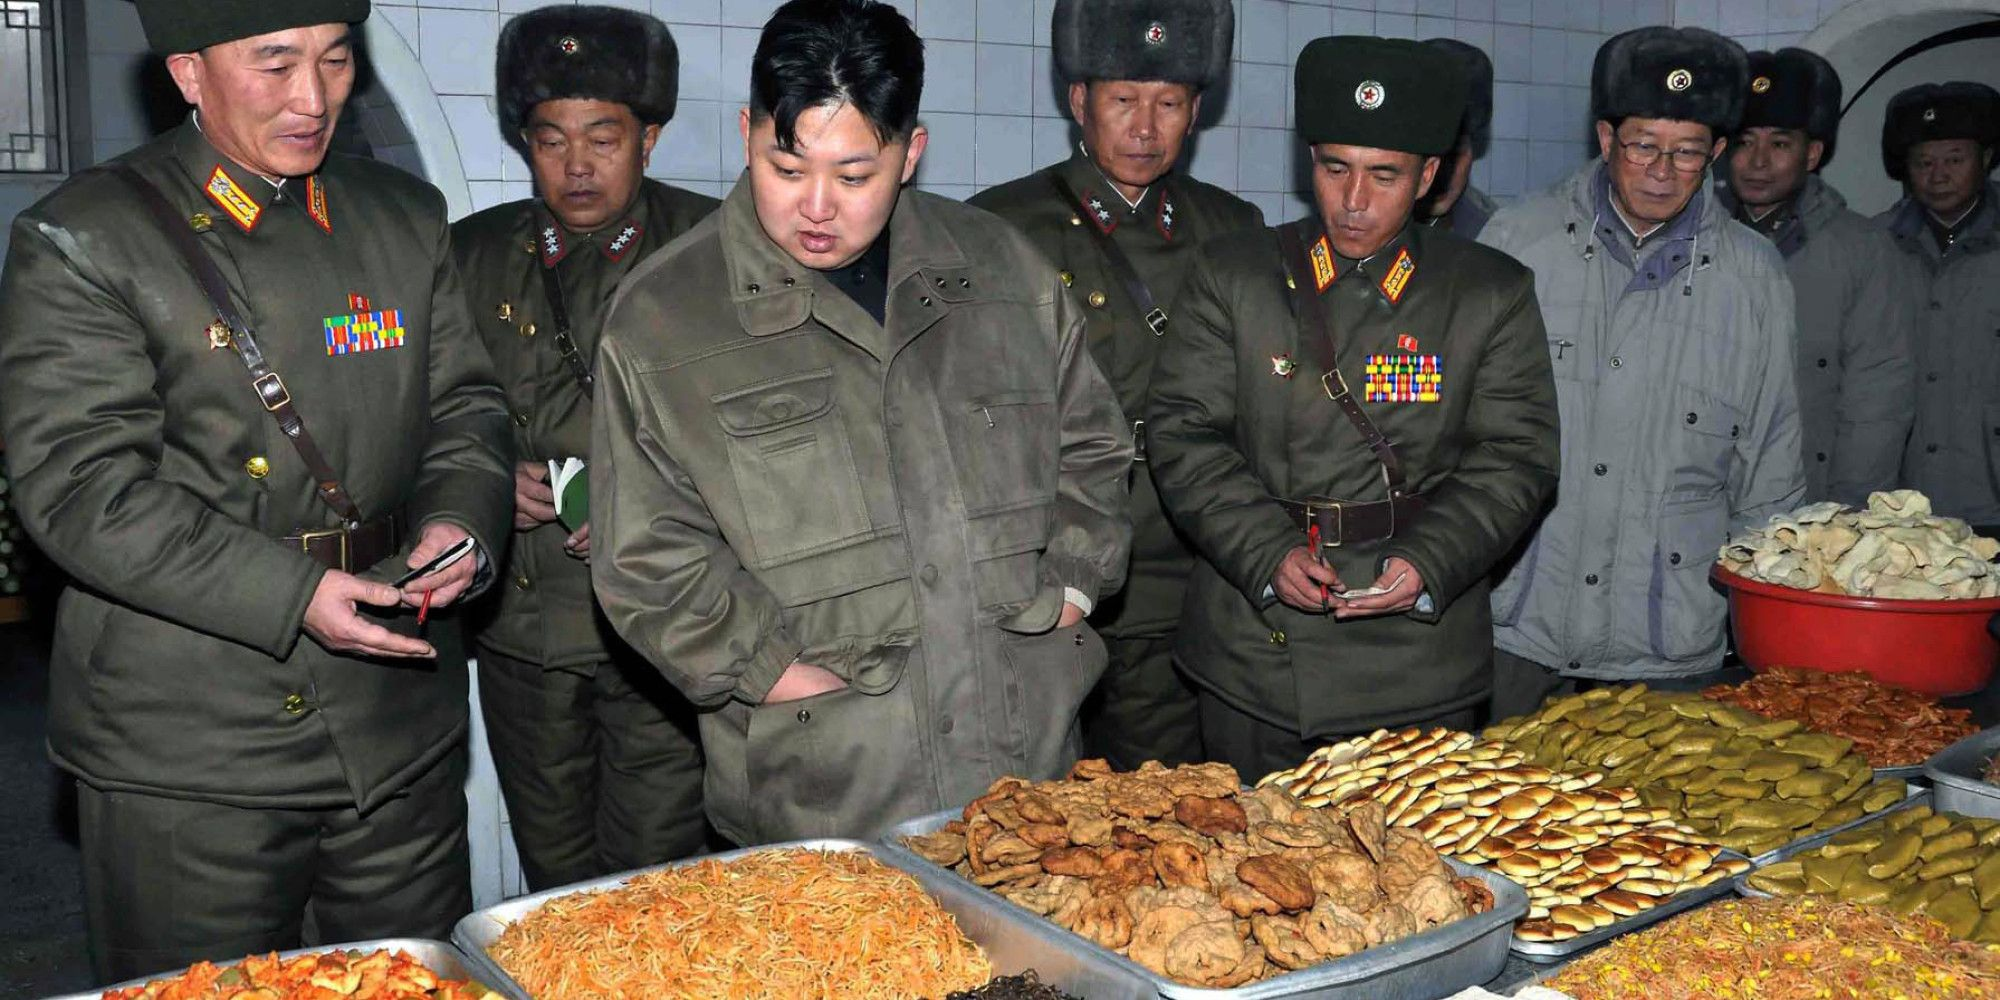 Kim Jong-un looking over the splendor of food while the ...